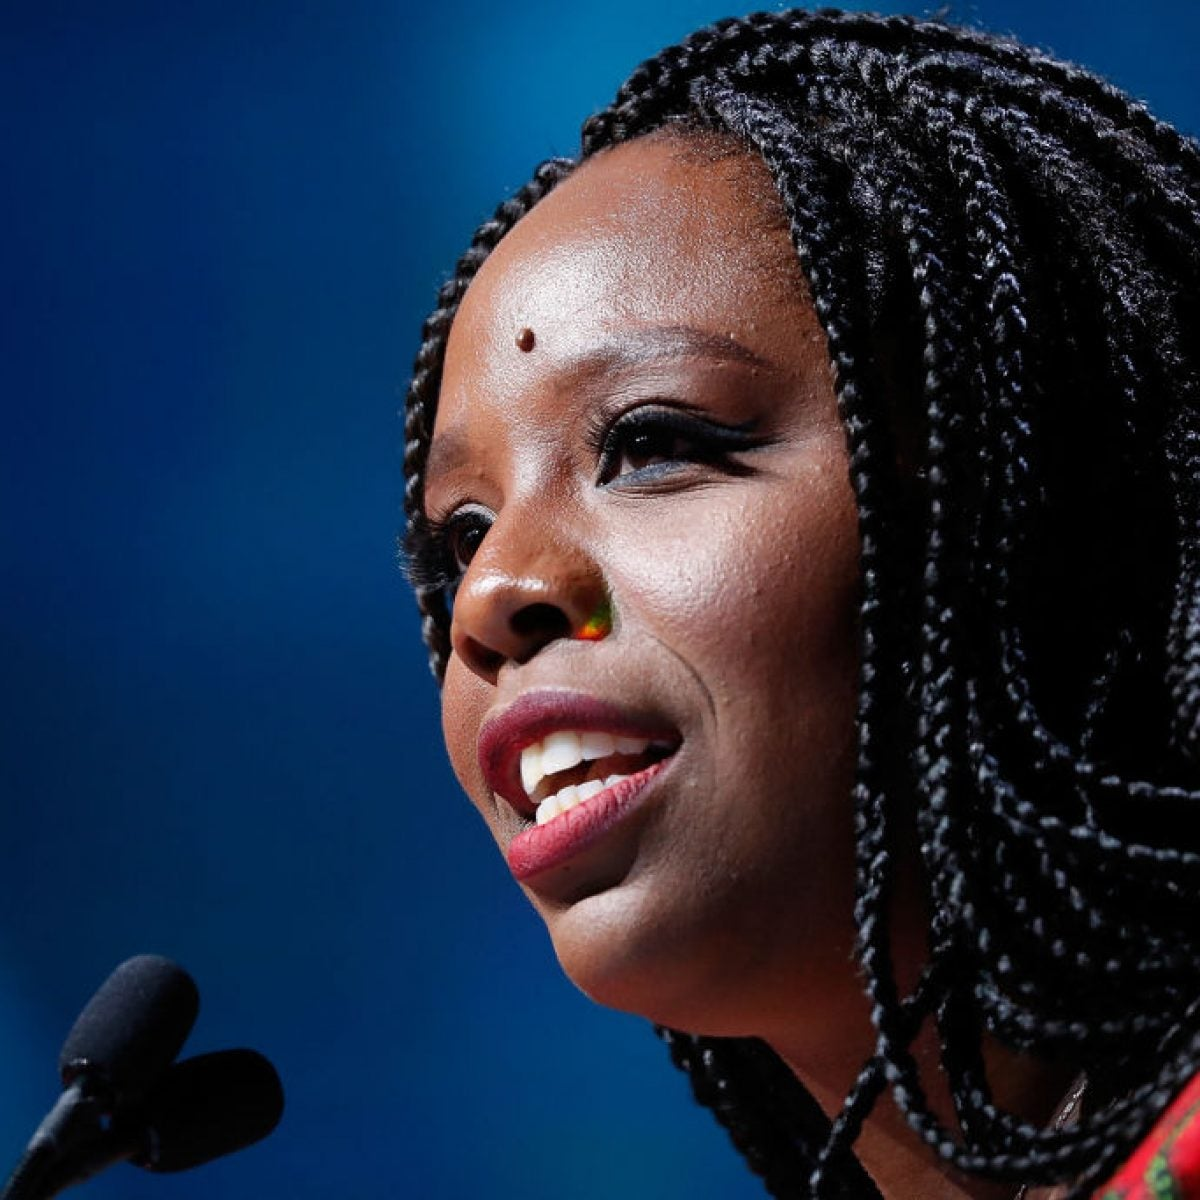 ESSENCE EXCLUSIVE With Black Lives Matter Co-Founder Patrisse Cullors